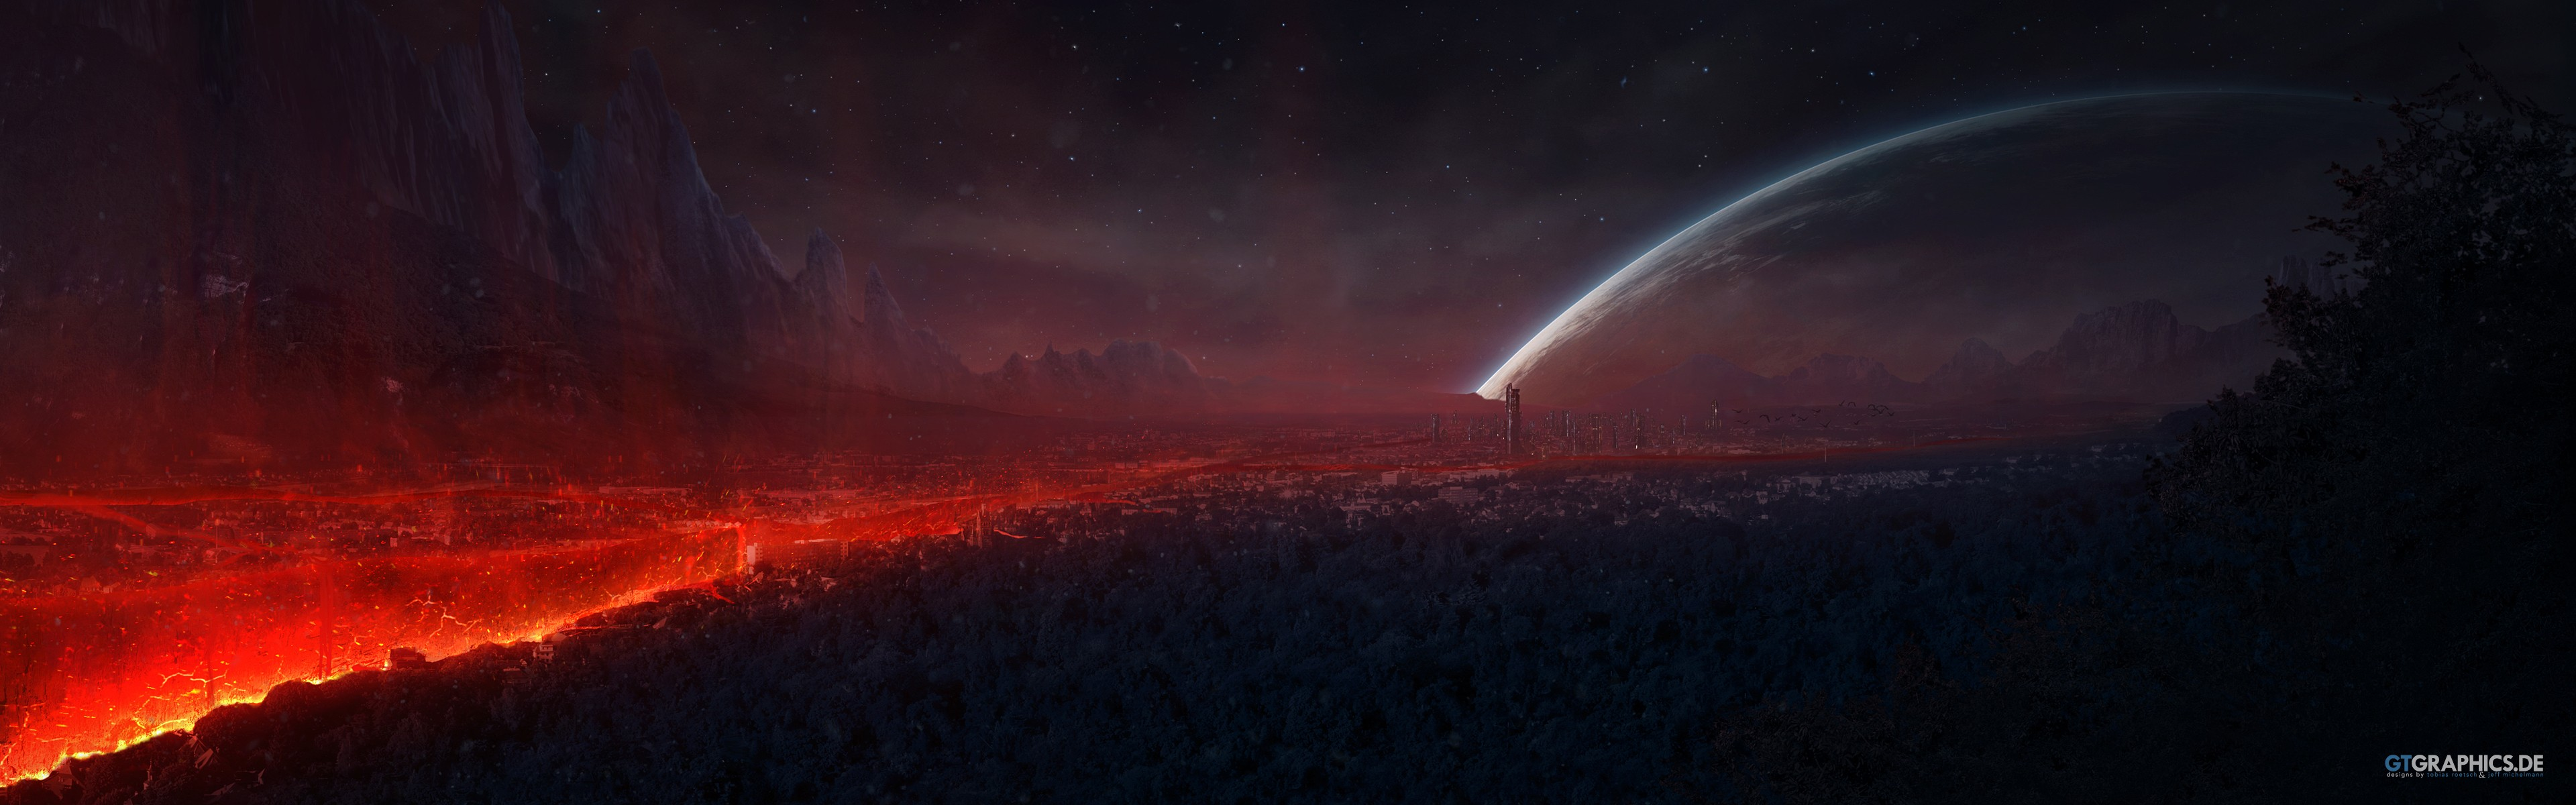 Planet rise hd wallpaper background image 3840x1200 - Space wallpaper 3840x1200 ...